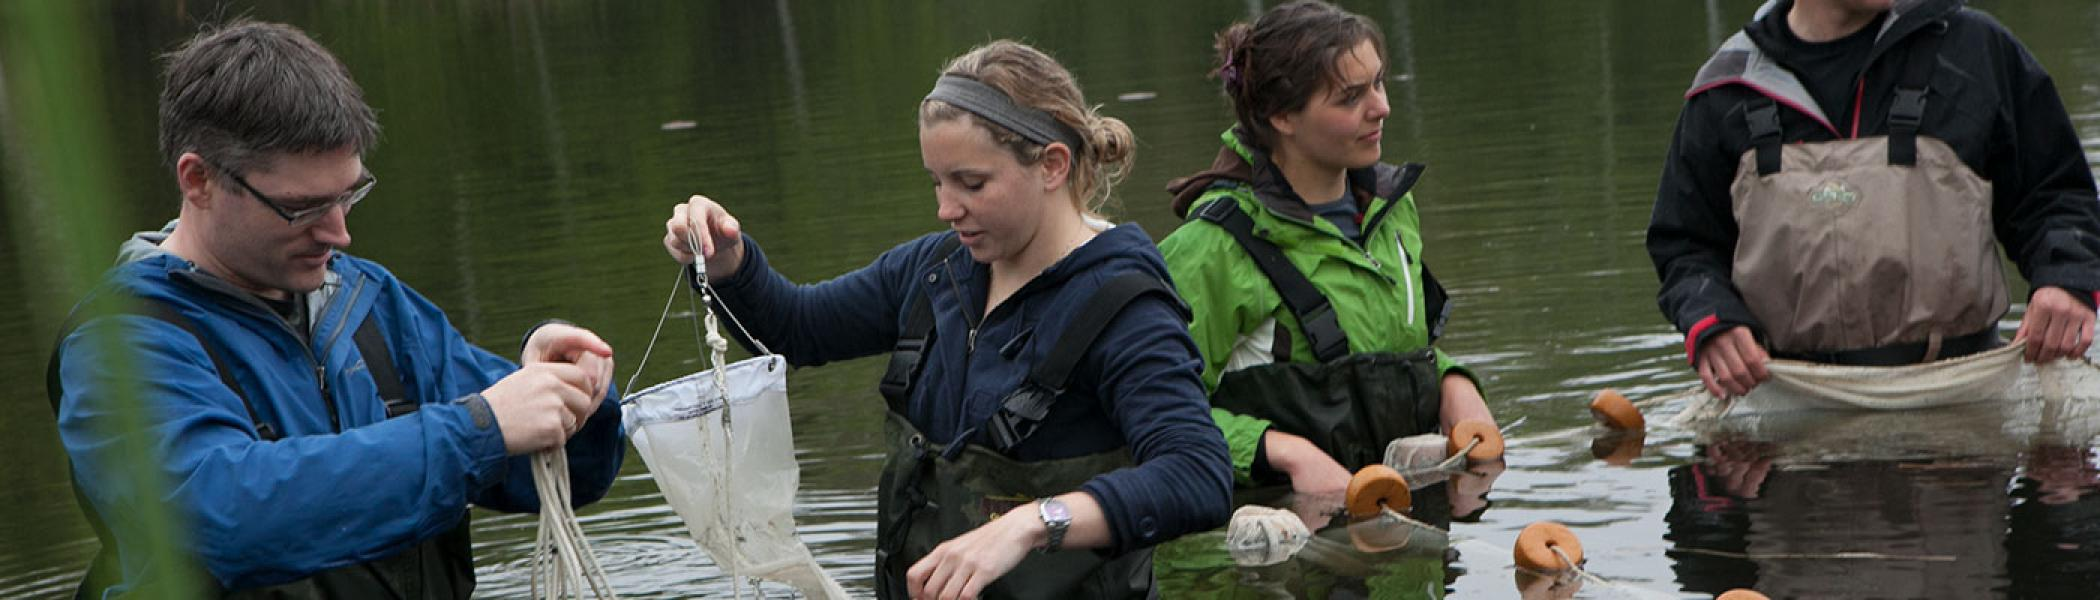 Bioenvironmental Monitoring & Assessment students and professors in the Otonabee River